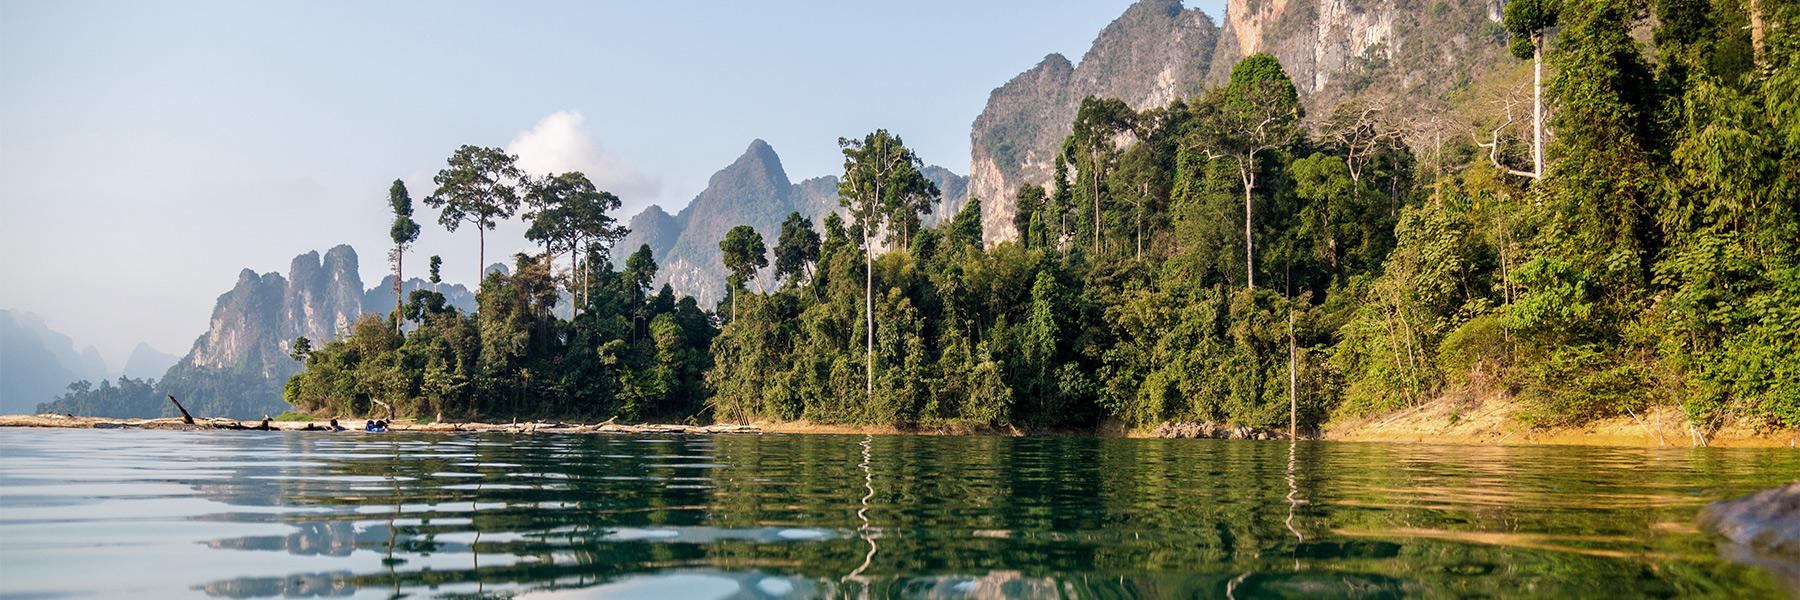 Why Visit Khao Sok National Park?